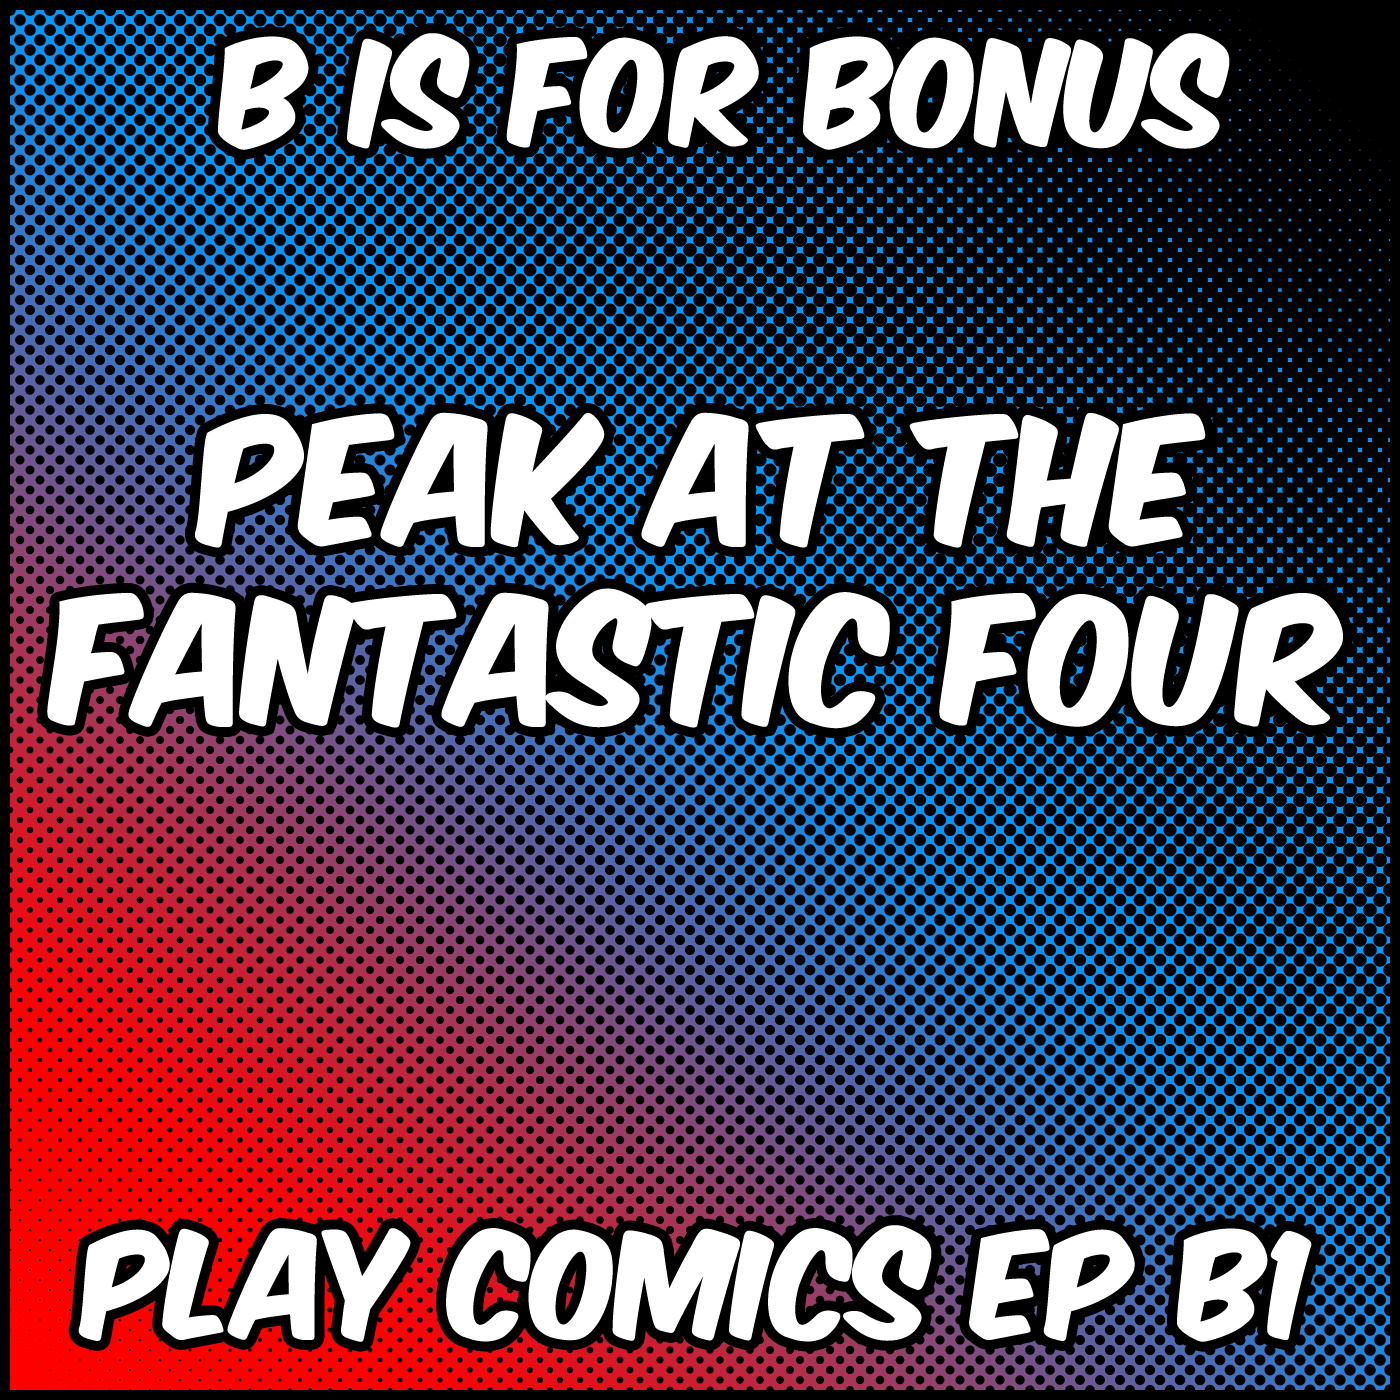 Bonus Fantastic Four with Kayleigh Osborne